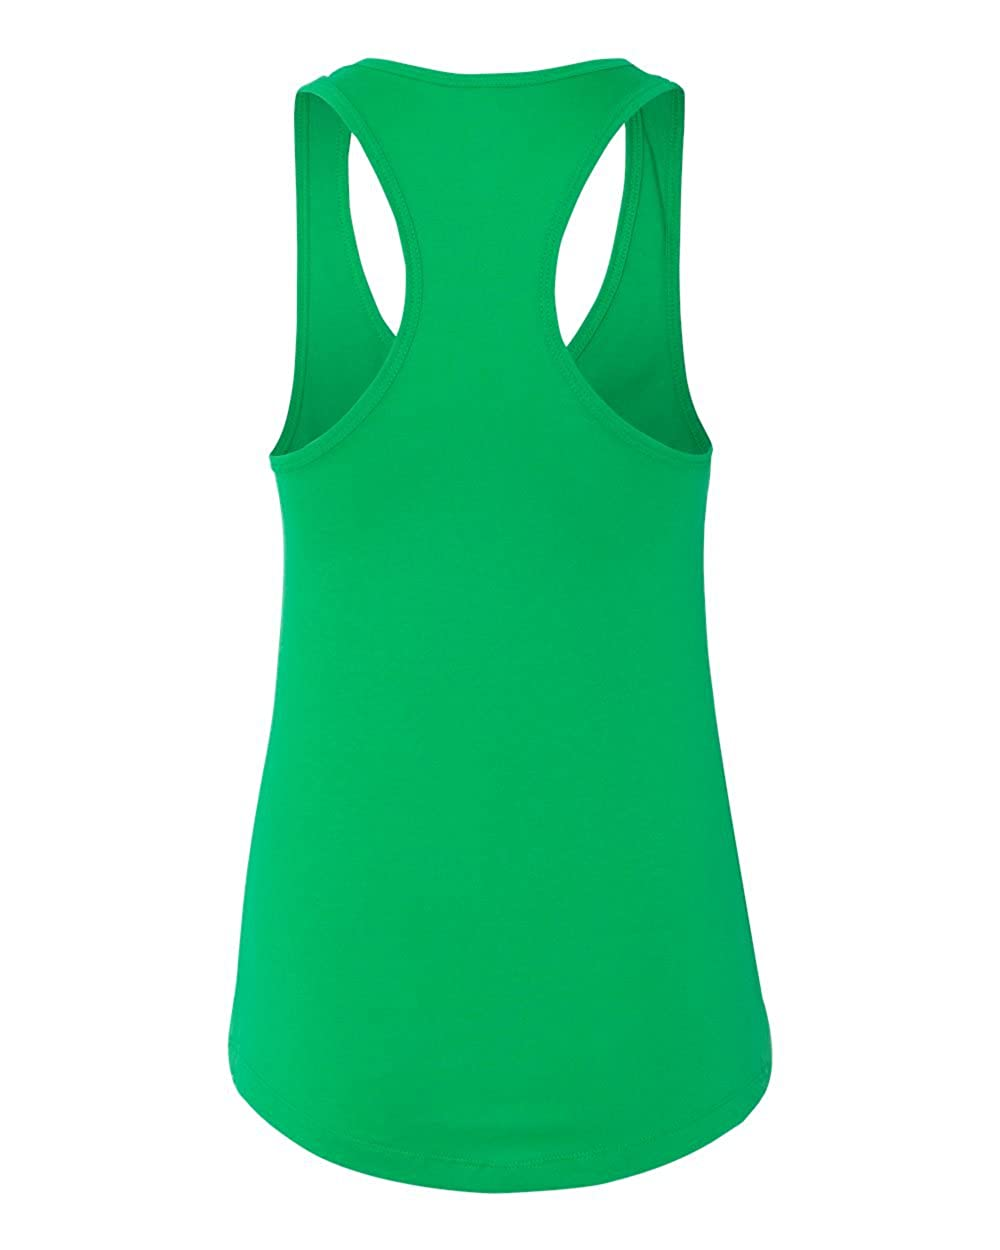 8dff5005 Amazon.com: Panoware Women's St Patricks Day Tank Top Shirt | Lucky Charm:  Clothing